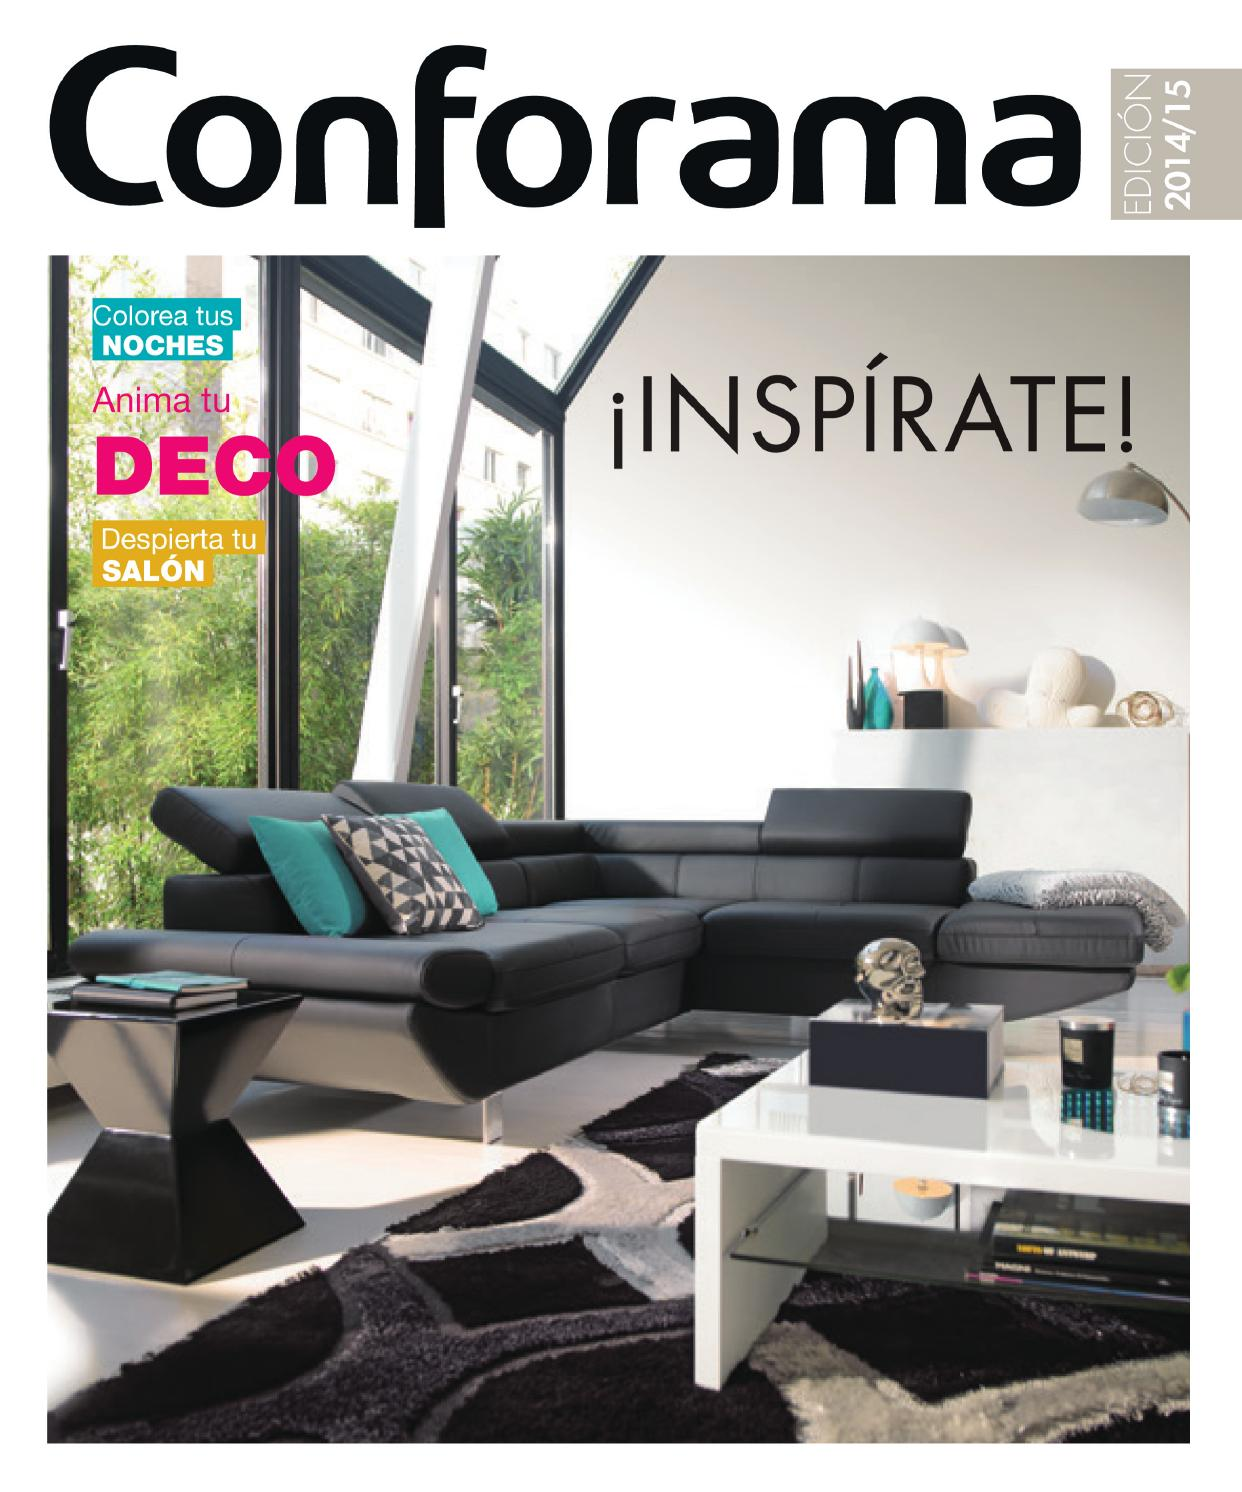 Conforama catalogo anual 2014 15 by losdescuentos issuu for Sillas de salon conforama